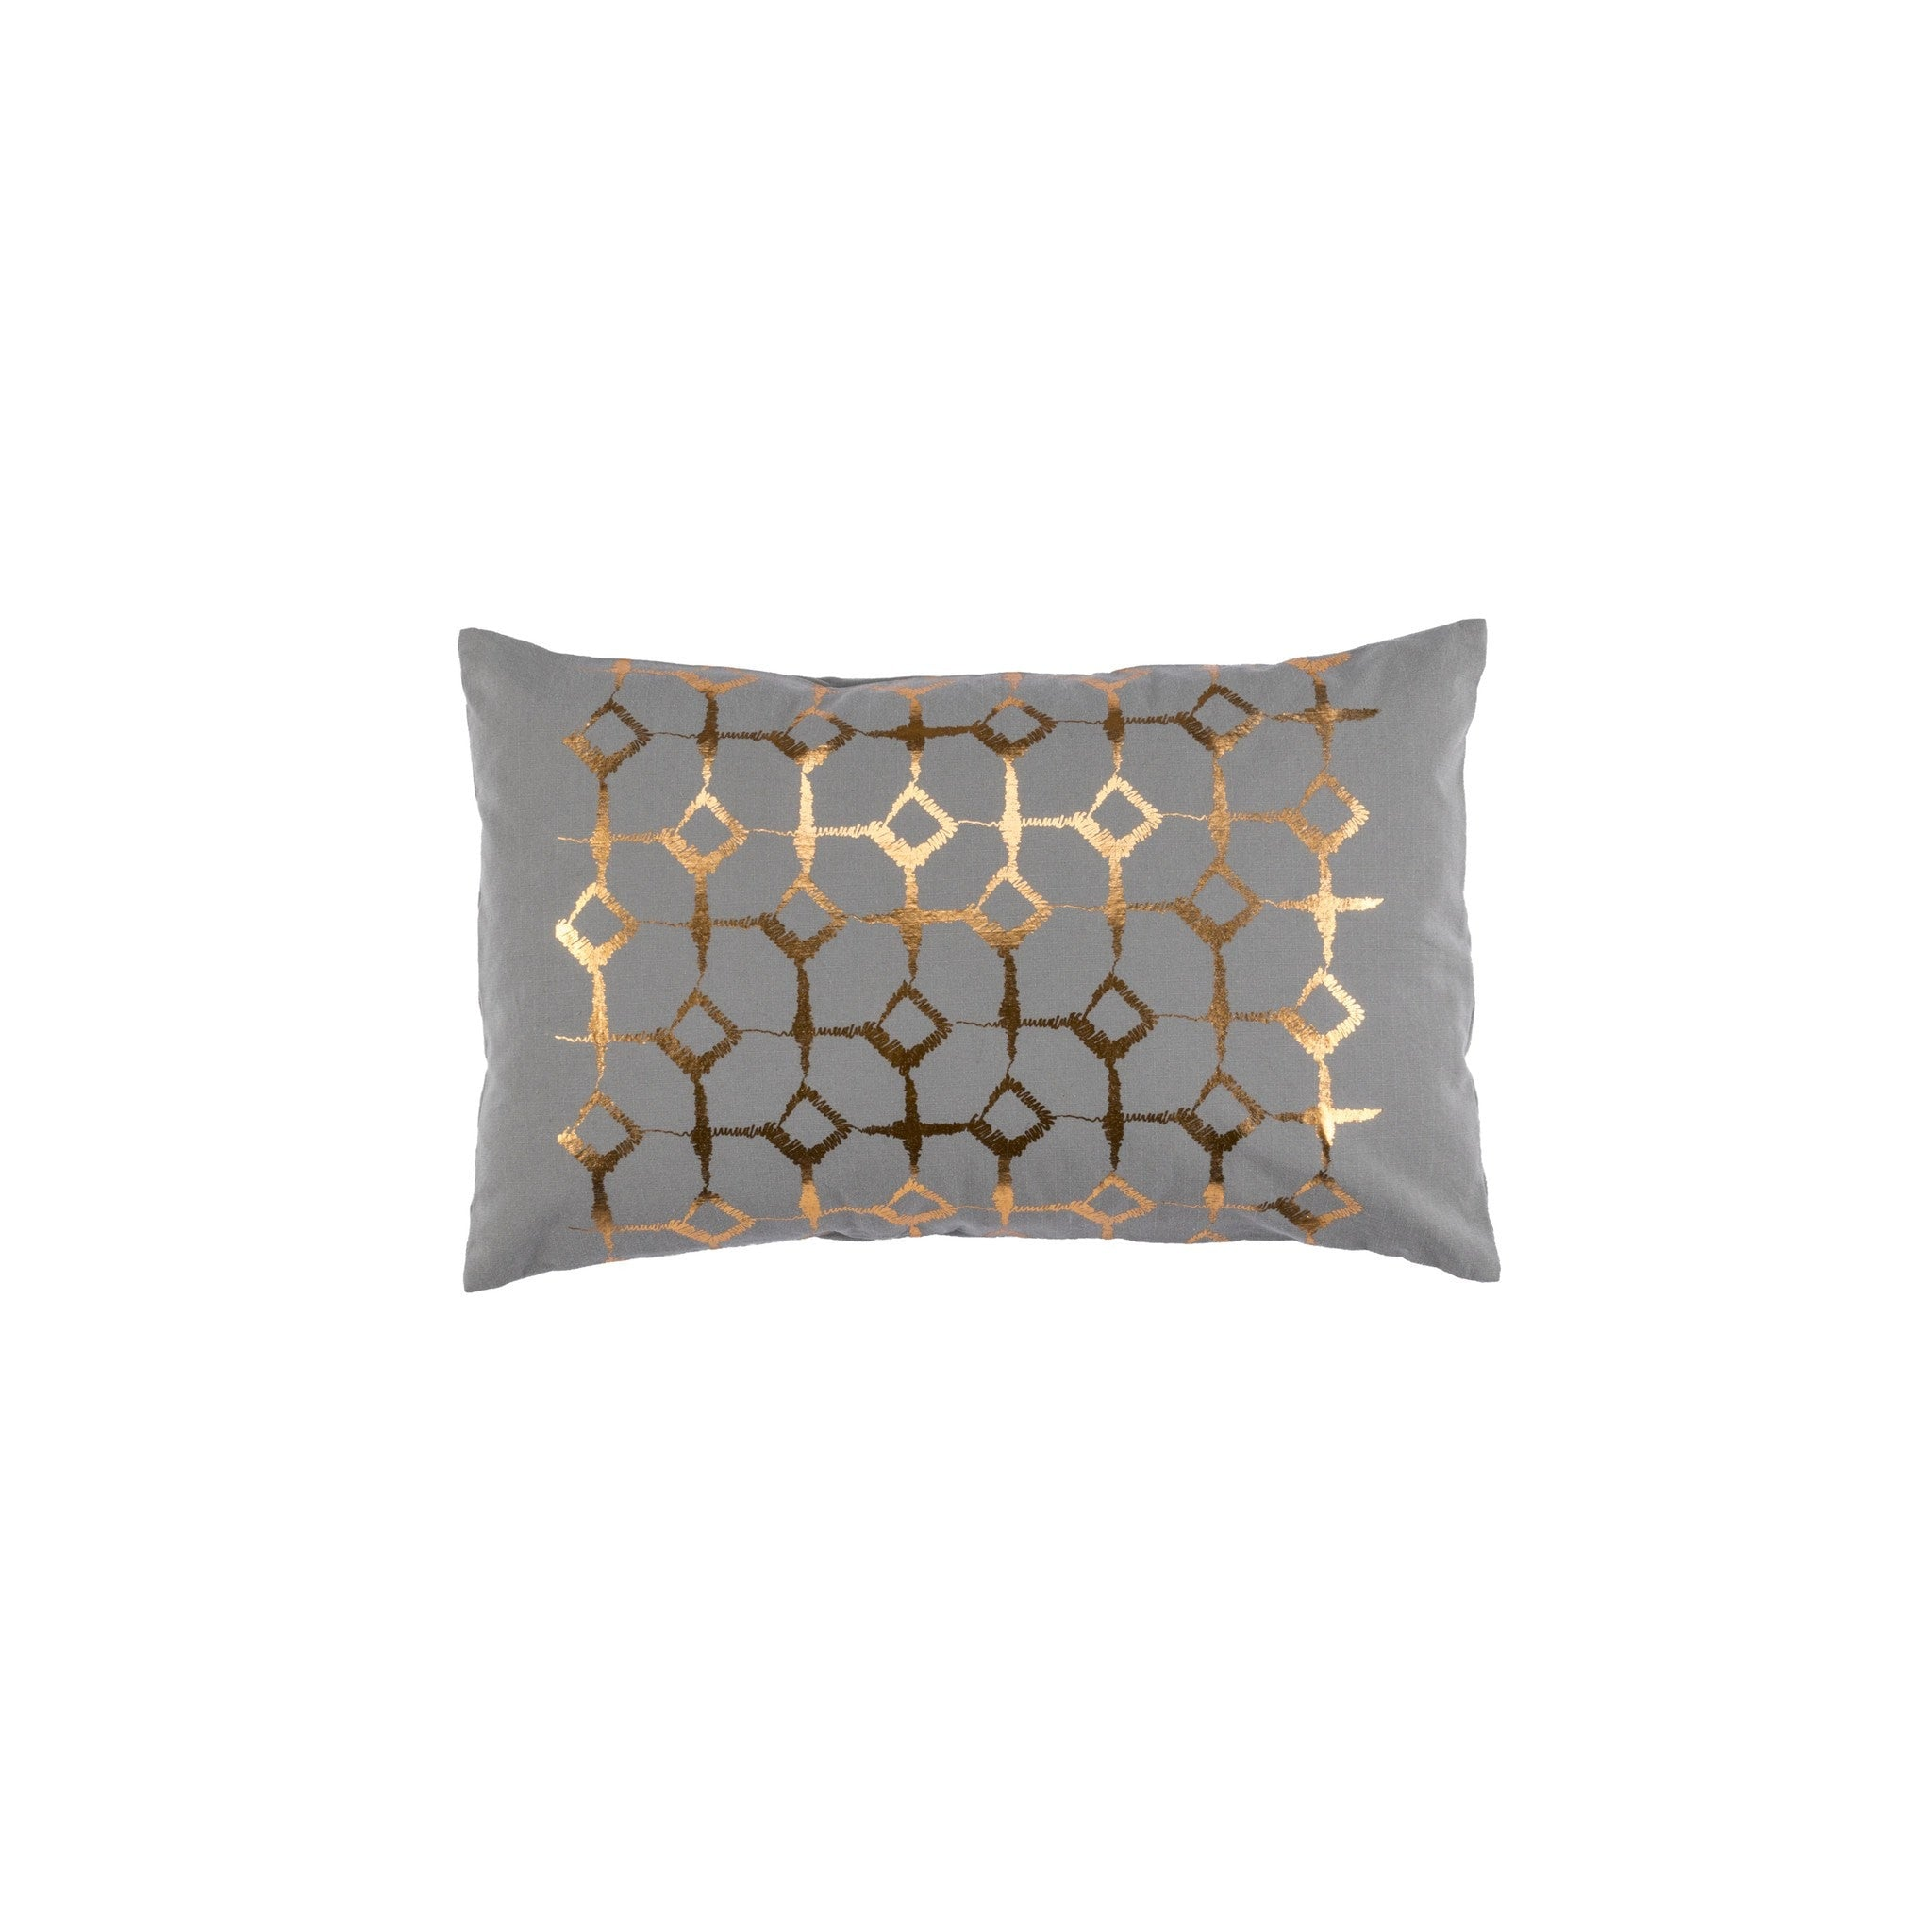 Signature Print Grey Cushion Covers